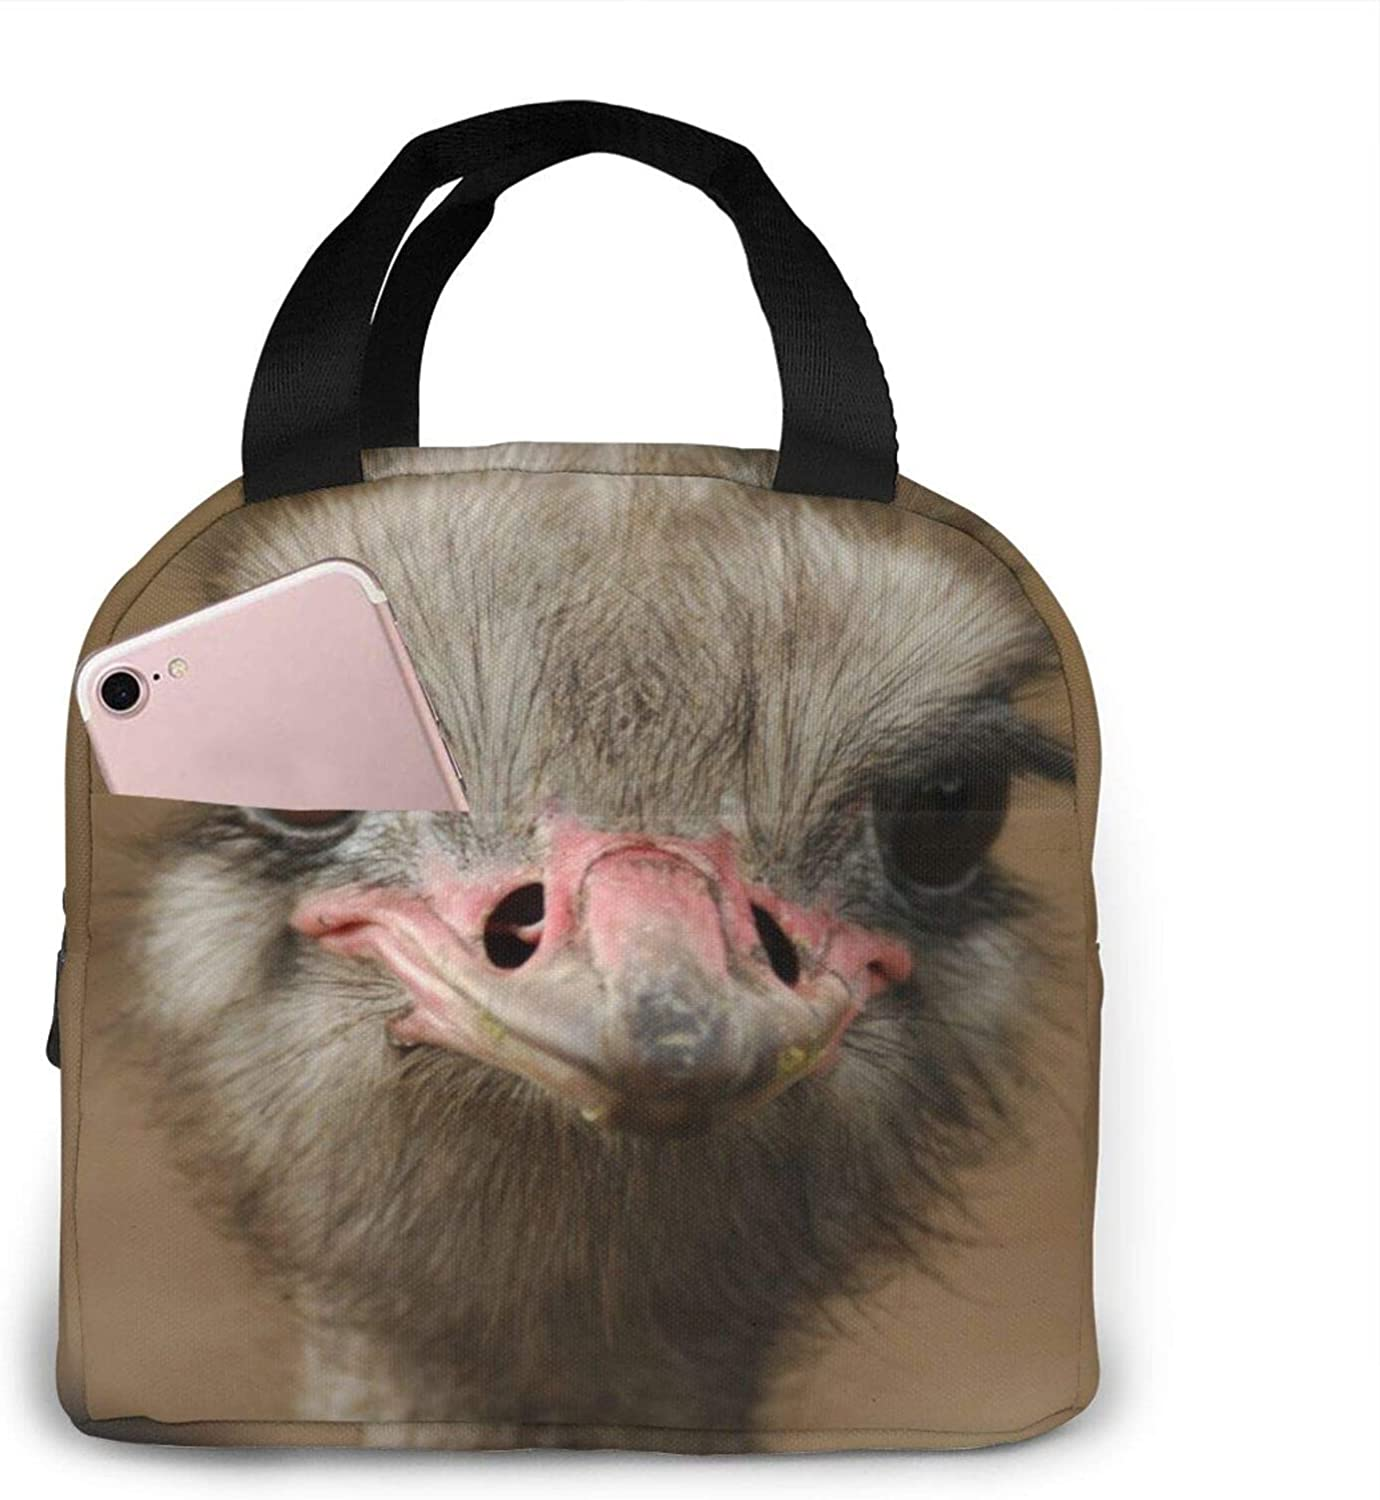 Cute Ostrich Lunch Bag Tote Bag Lunch Box Insulated Lunch Container For Woman Man